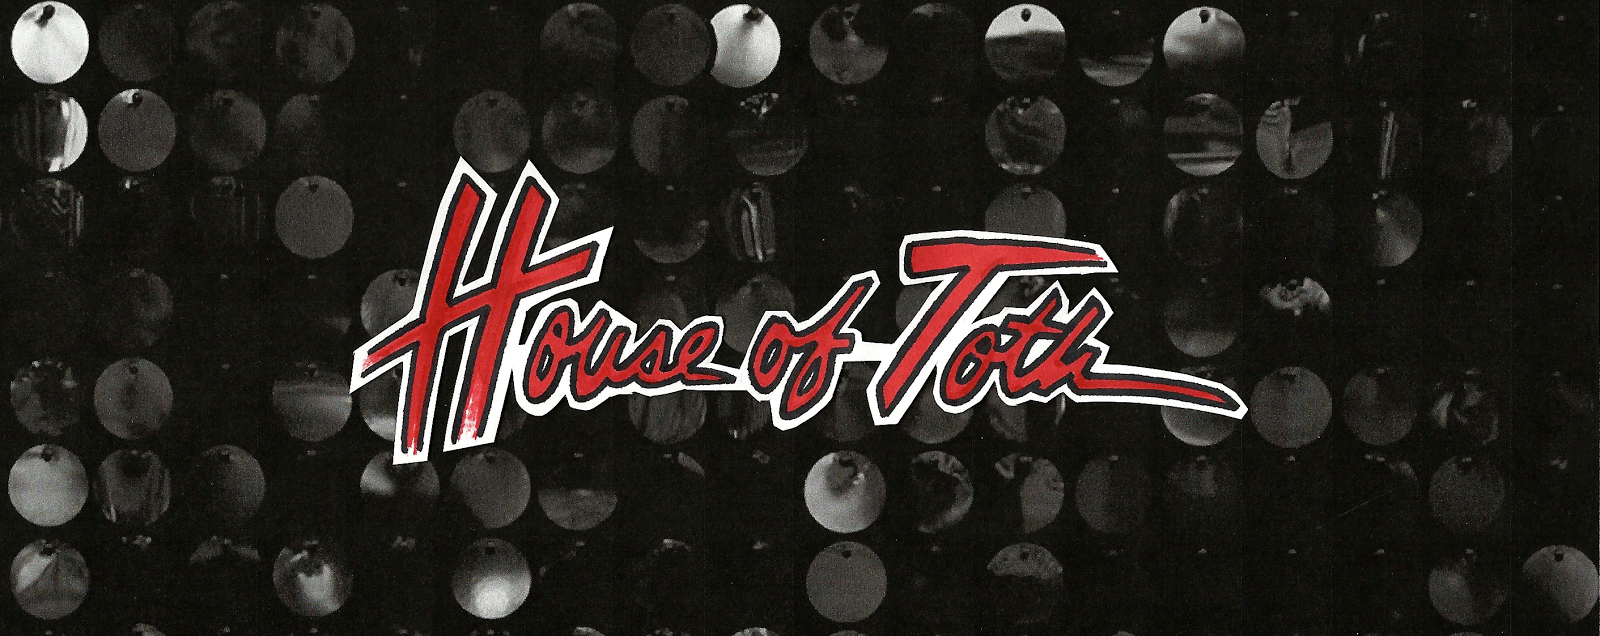 House of Toth.com...     The Art of John Toth